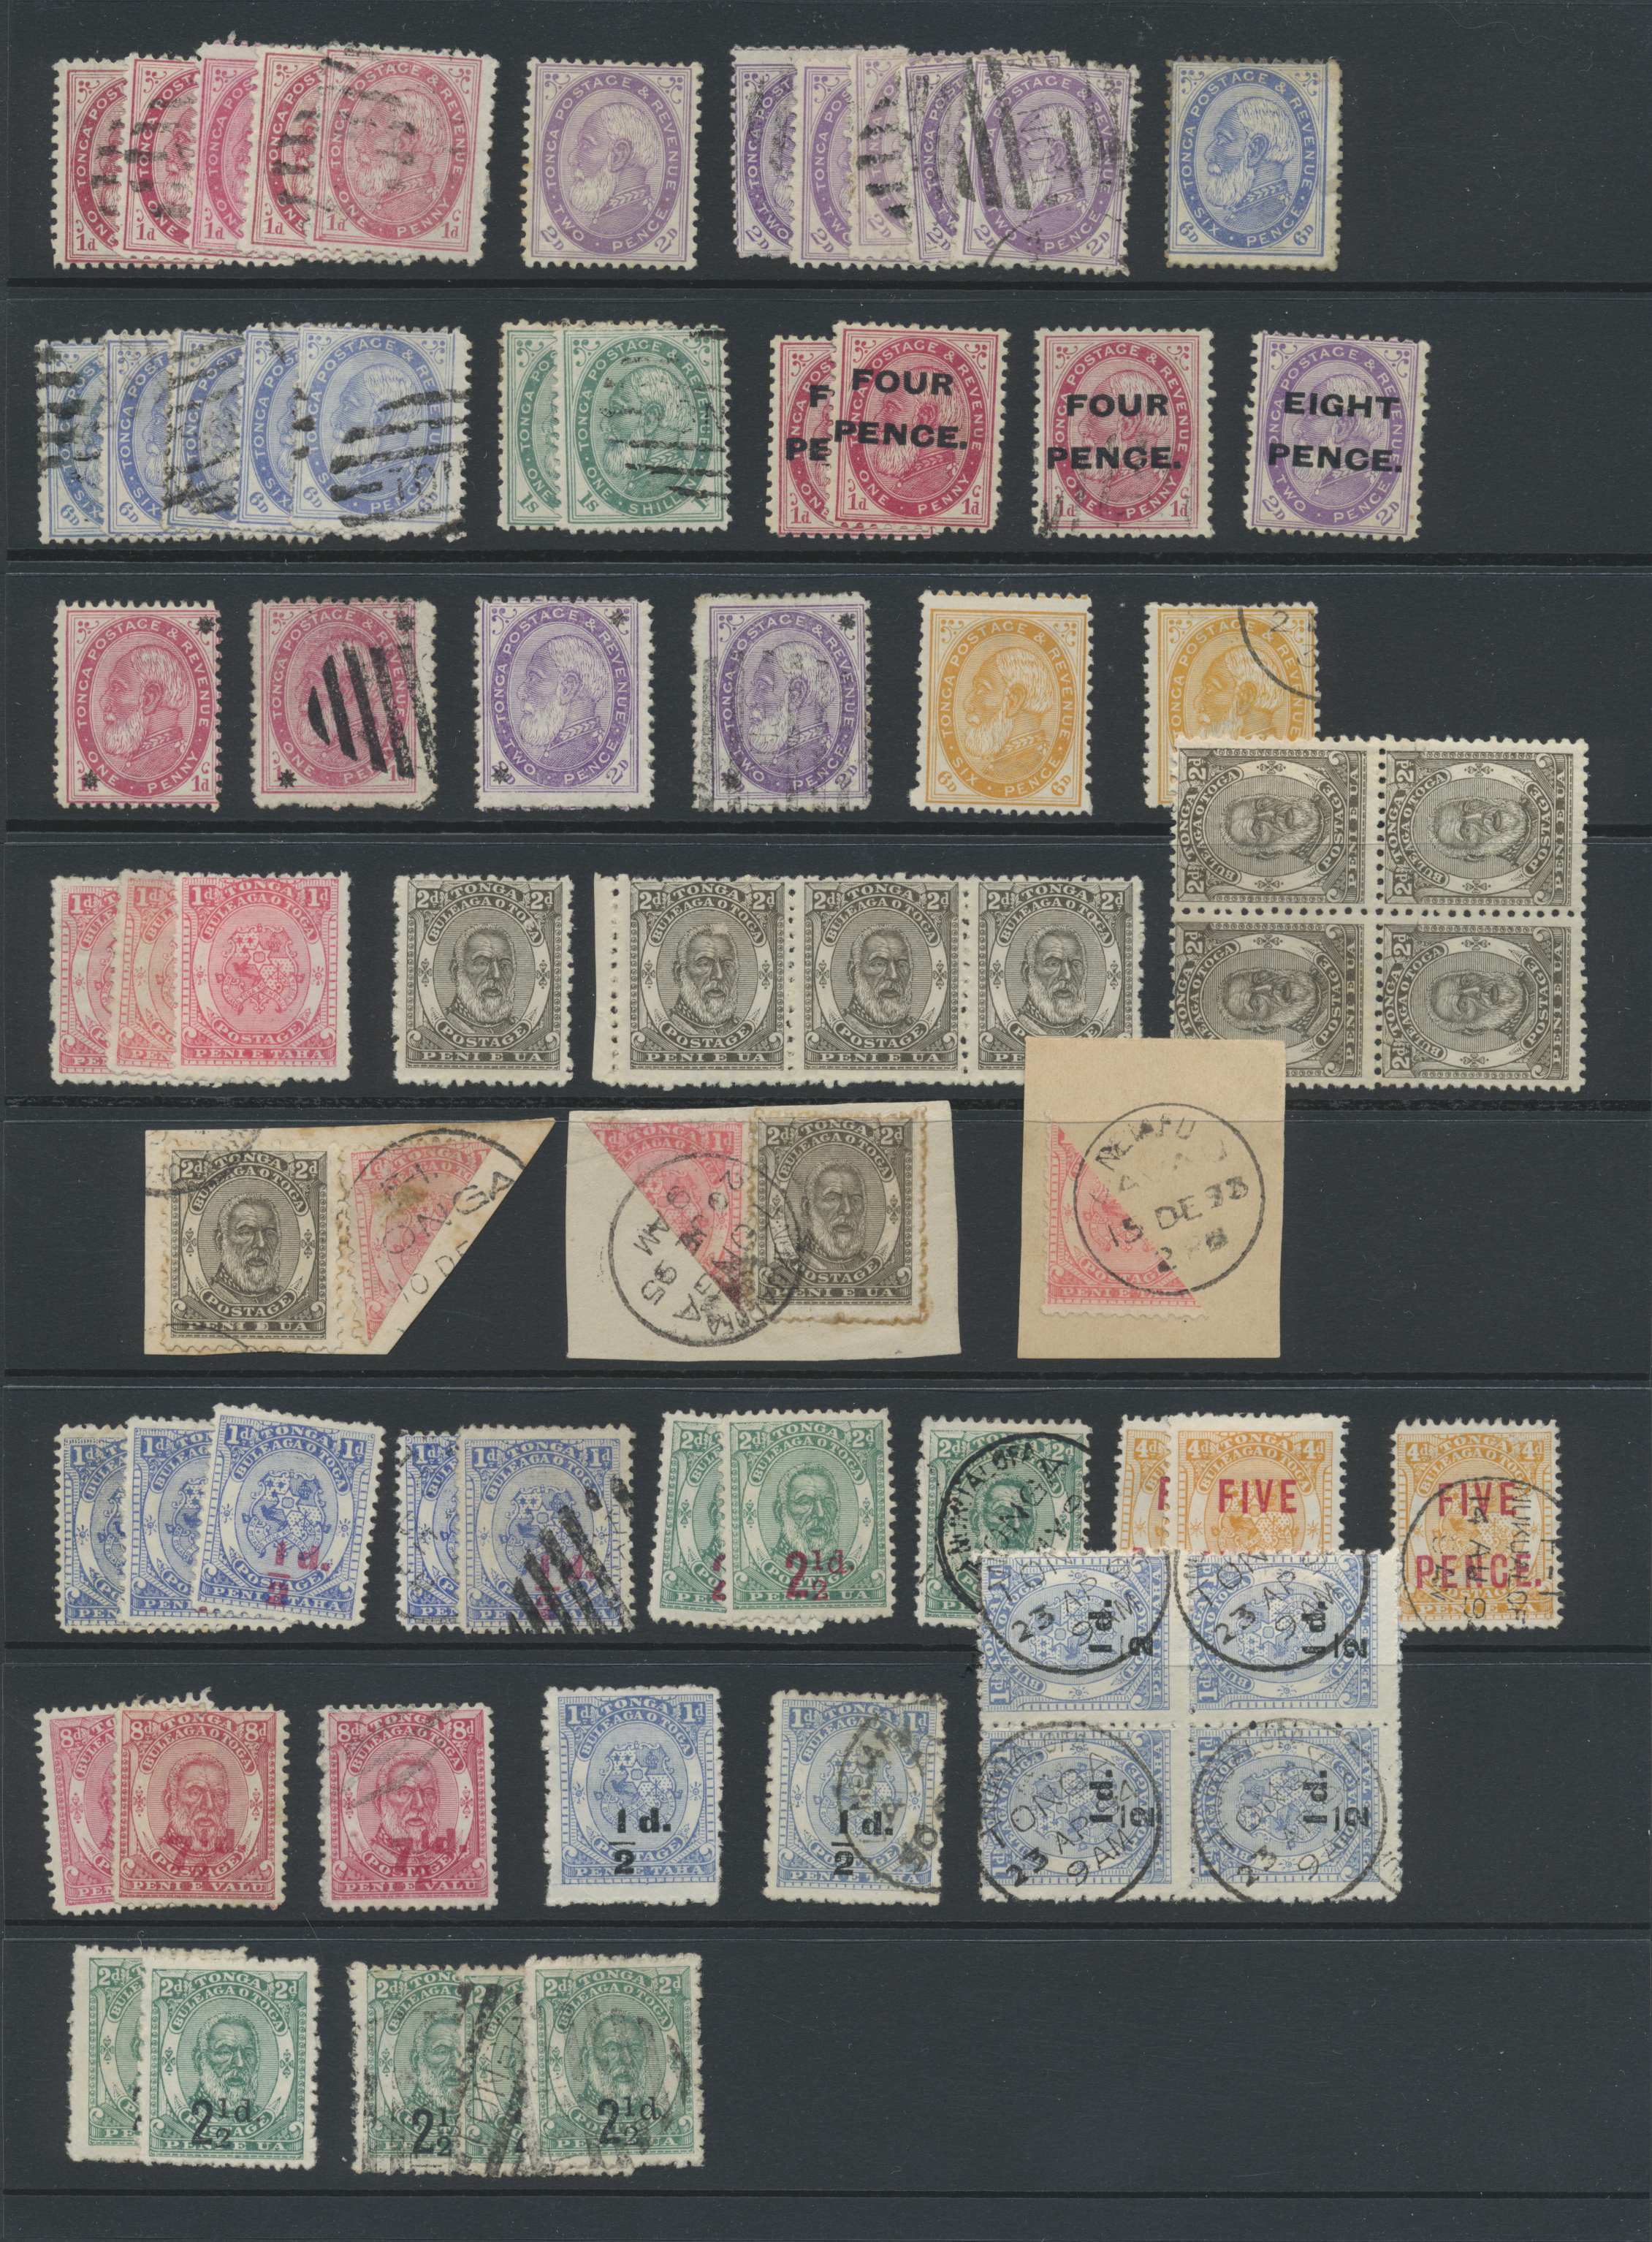 Stamp Auction - tonga - Sale #43 Asia, Collections Overseas